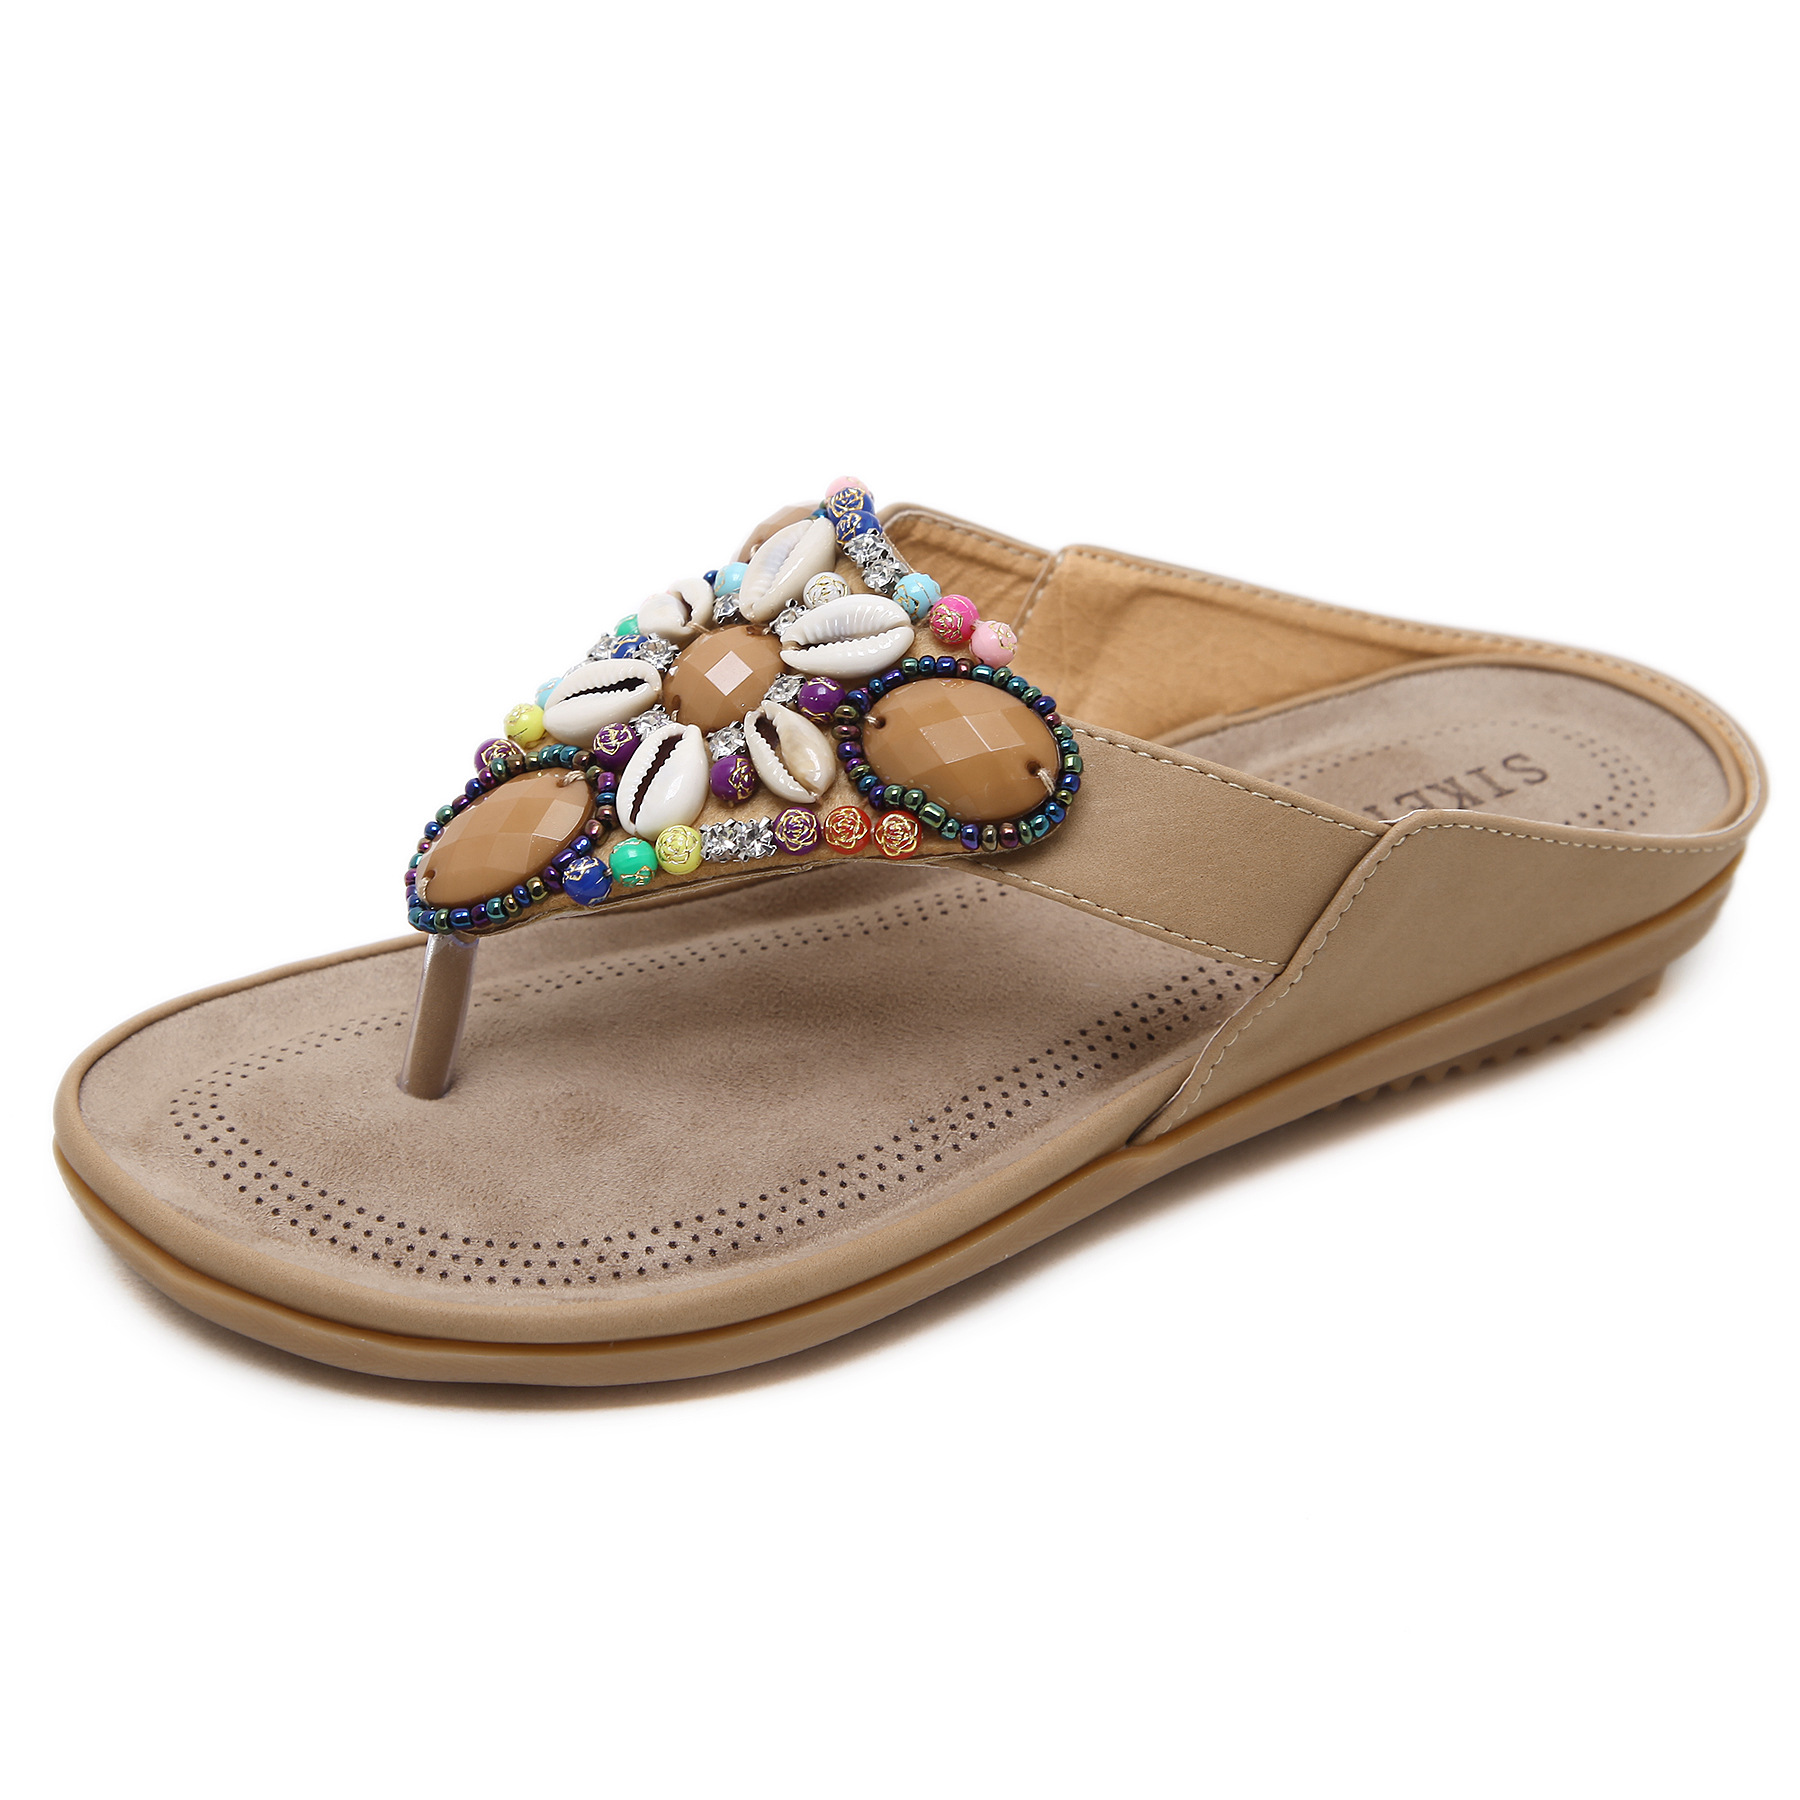 Sandals flat bottomed wear ethnic style clip toe sandals Bohemian Beaded large SANDALS BEACH SHOES flip flop